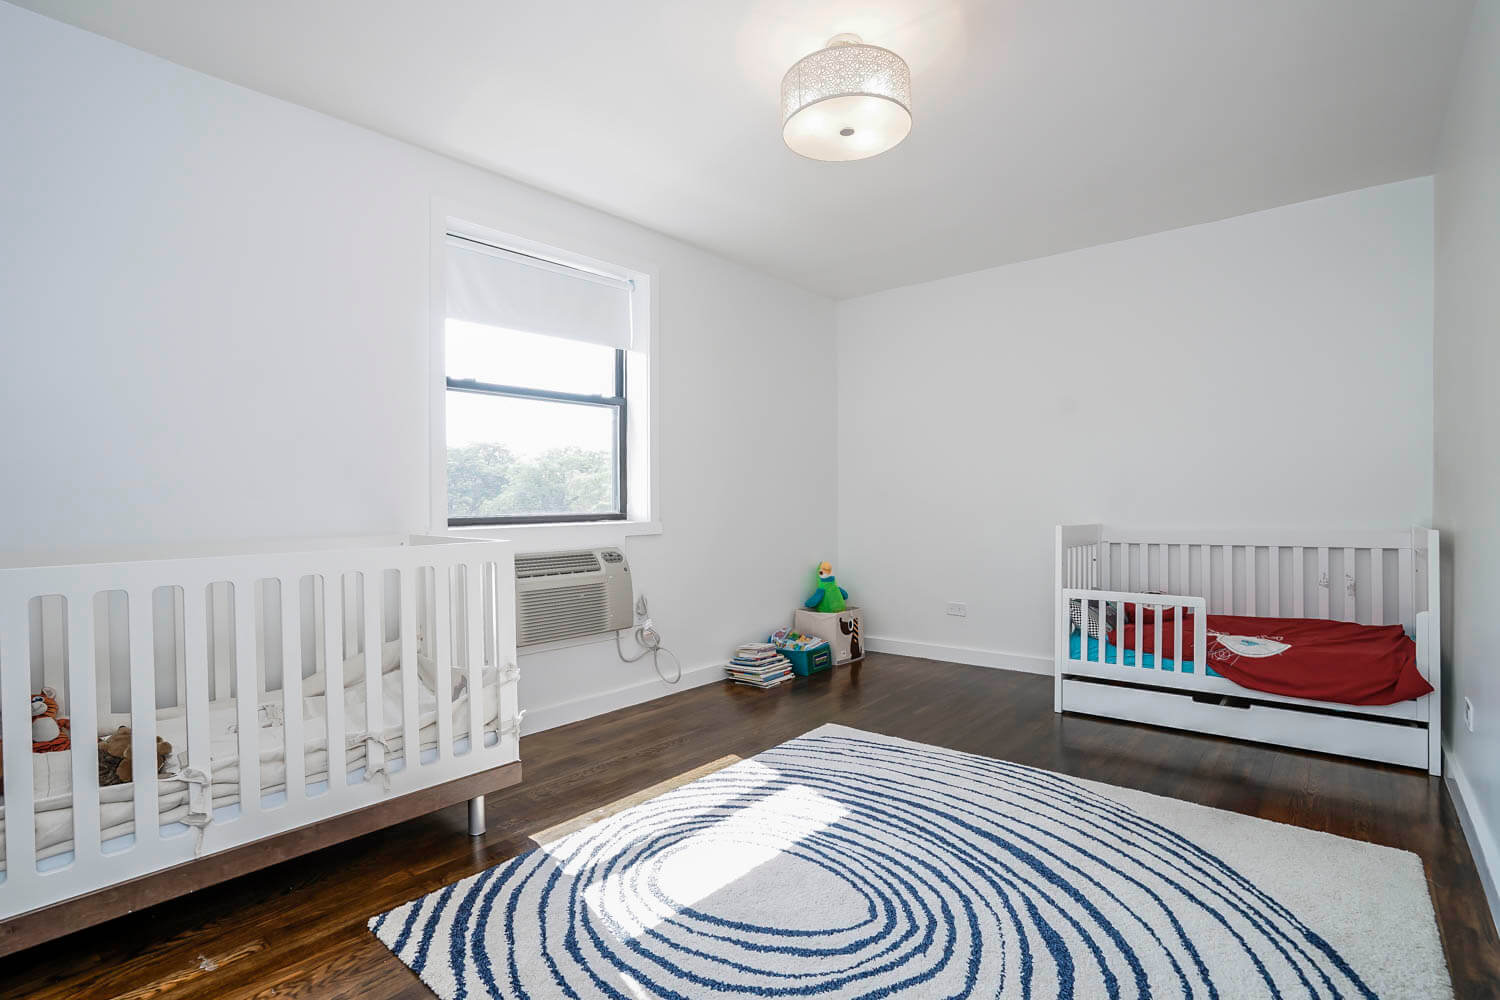 This beach-style kid's room looks very bright, fresh, and spacious thanks to a few large windows through which light and clean fresh air can easily enter the room, a small number of furniture pieces placed mainly around the perimeter of the room, and light colors, which create a welcoming, warm and cheerful atmosphere. Change radically the look and functionality of your kid's room, too, together with our top NYC interior designers!